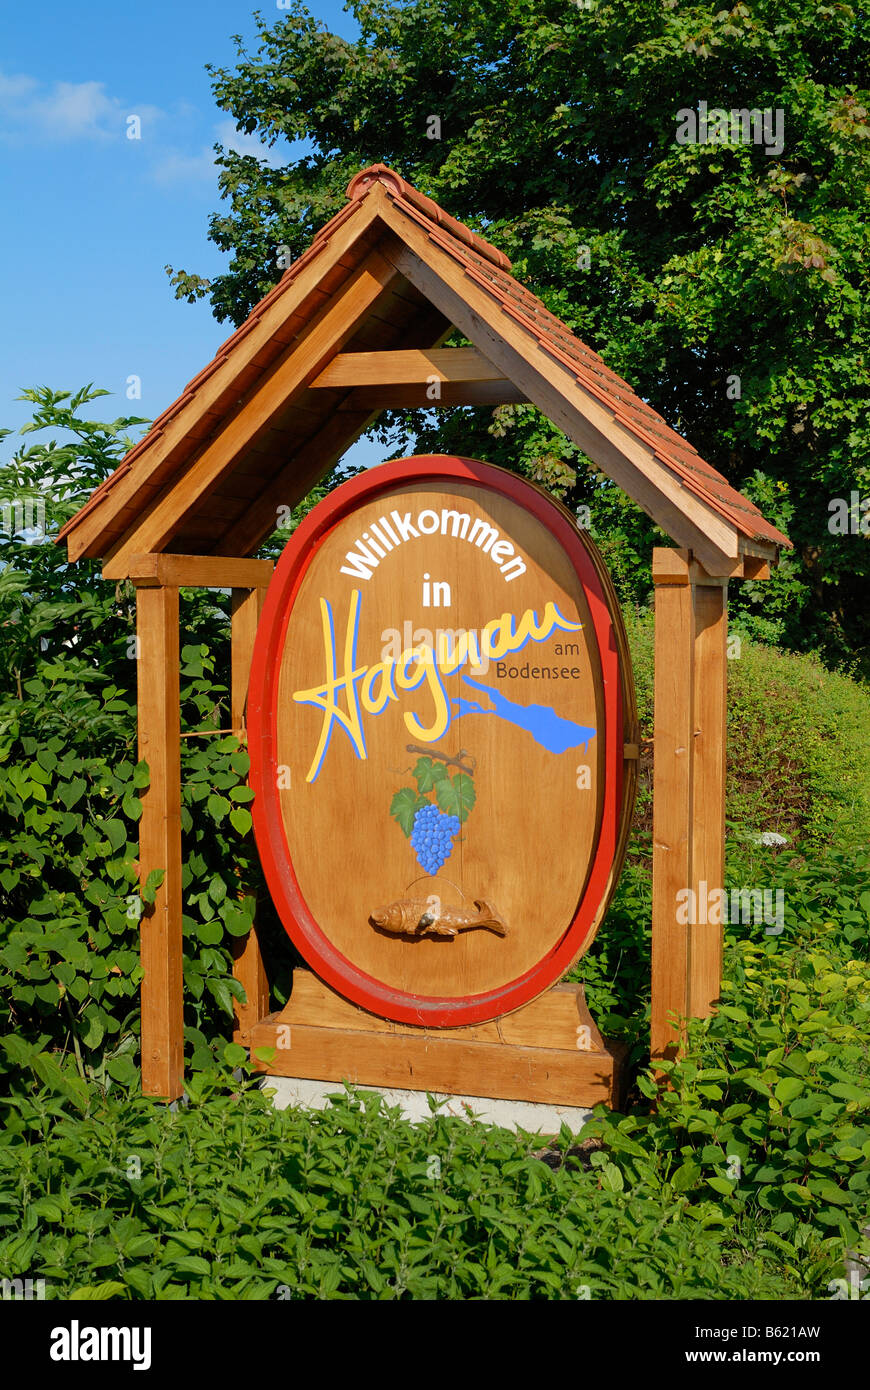 Welcome sign of Hagnau, Bodensee district, Baden-Wuerttemberg, Germany, Europe - Stock Image